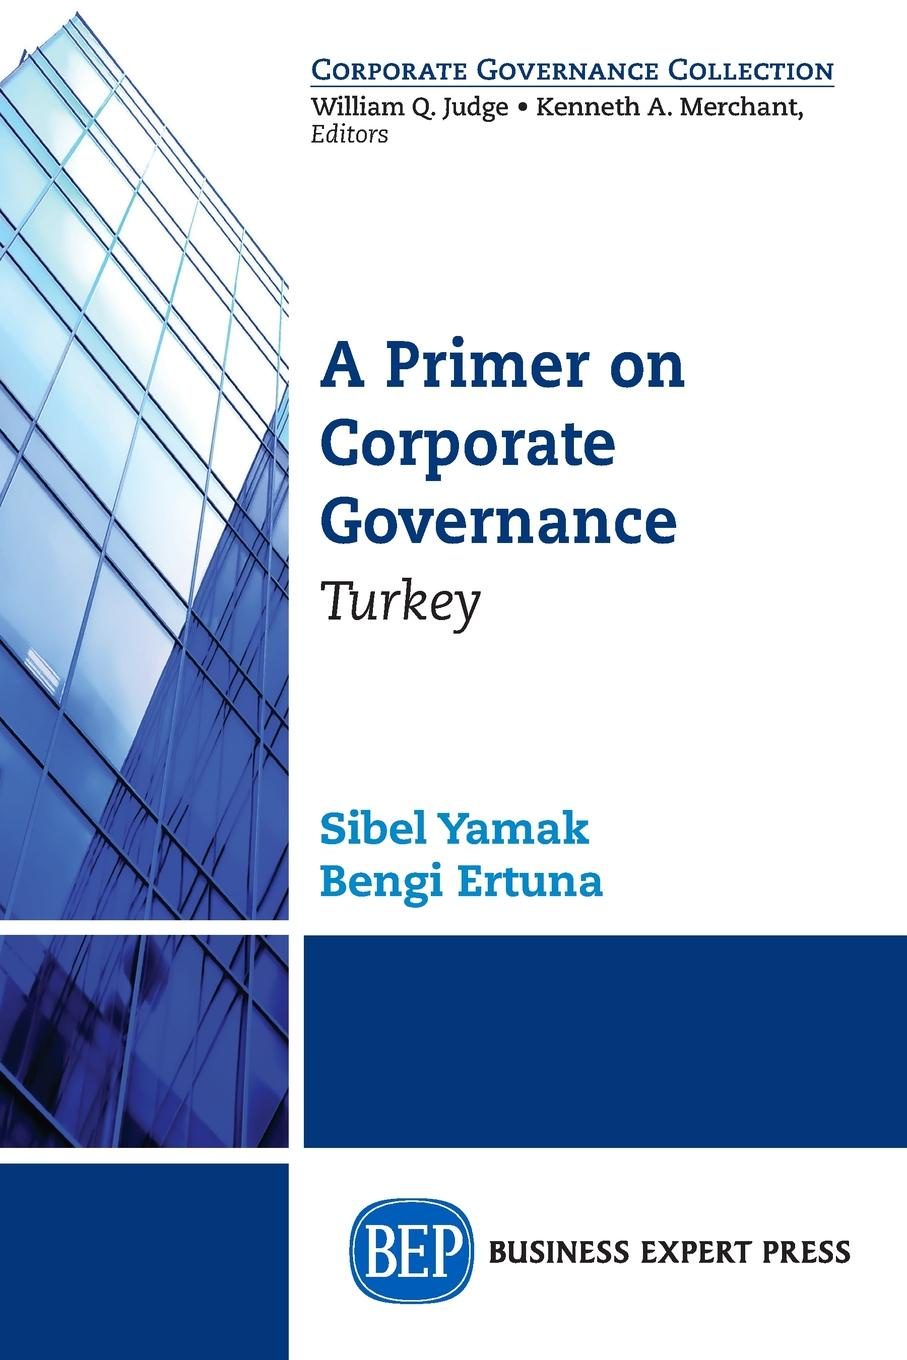 Sibel Yamak, Bengi Ertuna A Primer on Corporate Governance. Turkey minow nell corporate governance